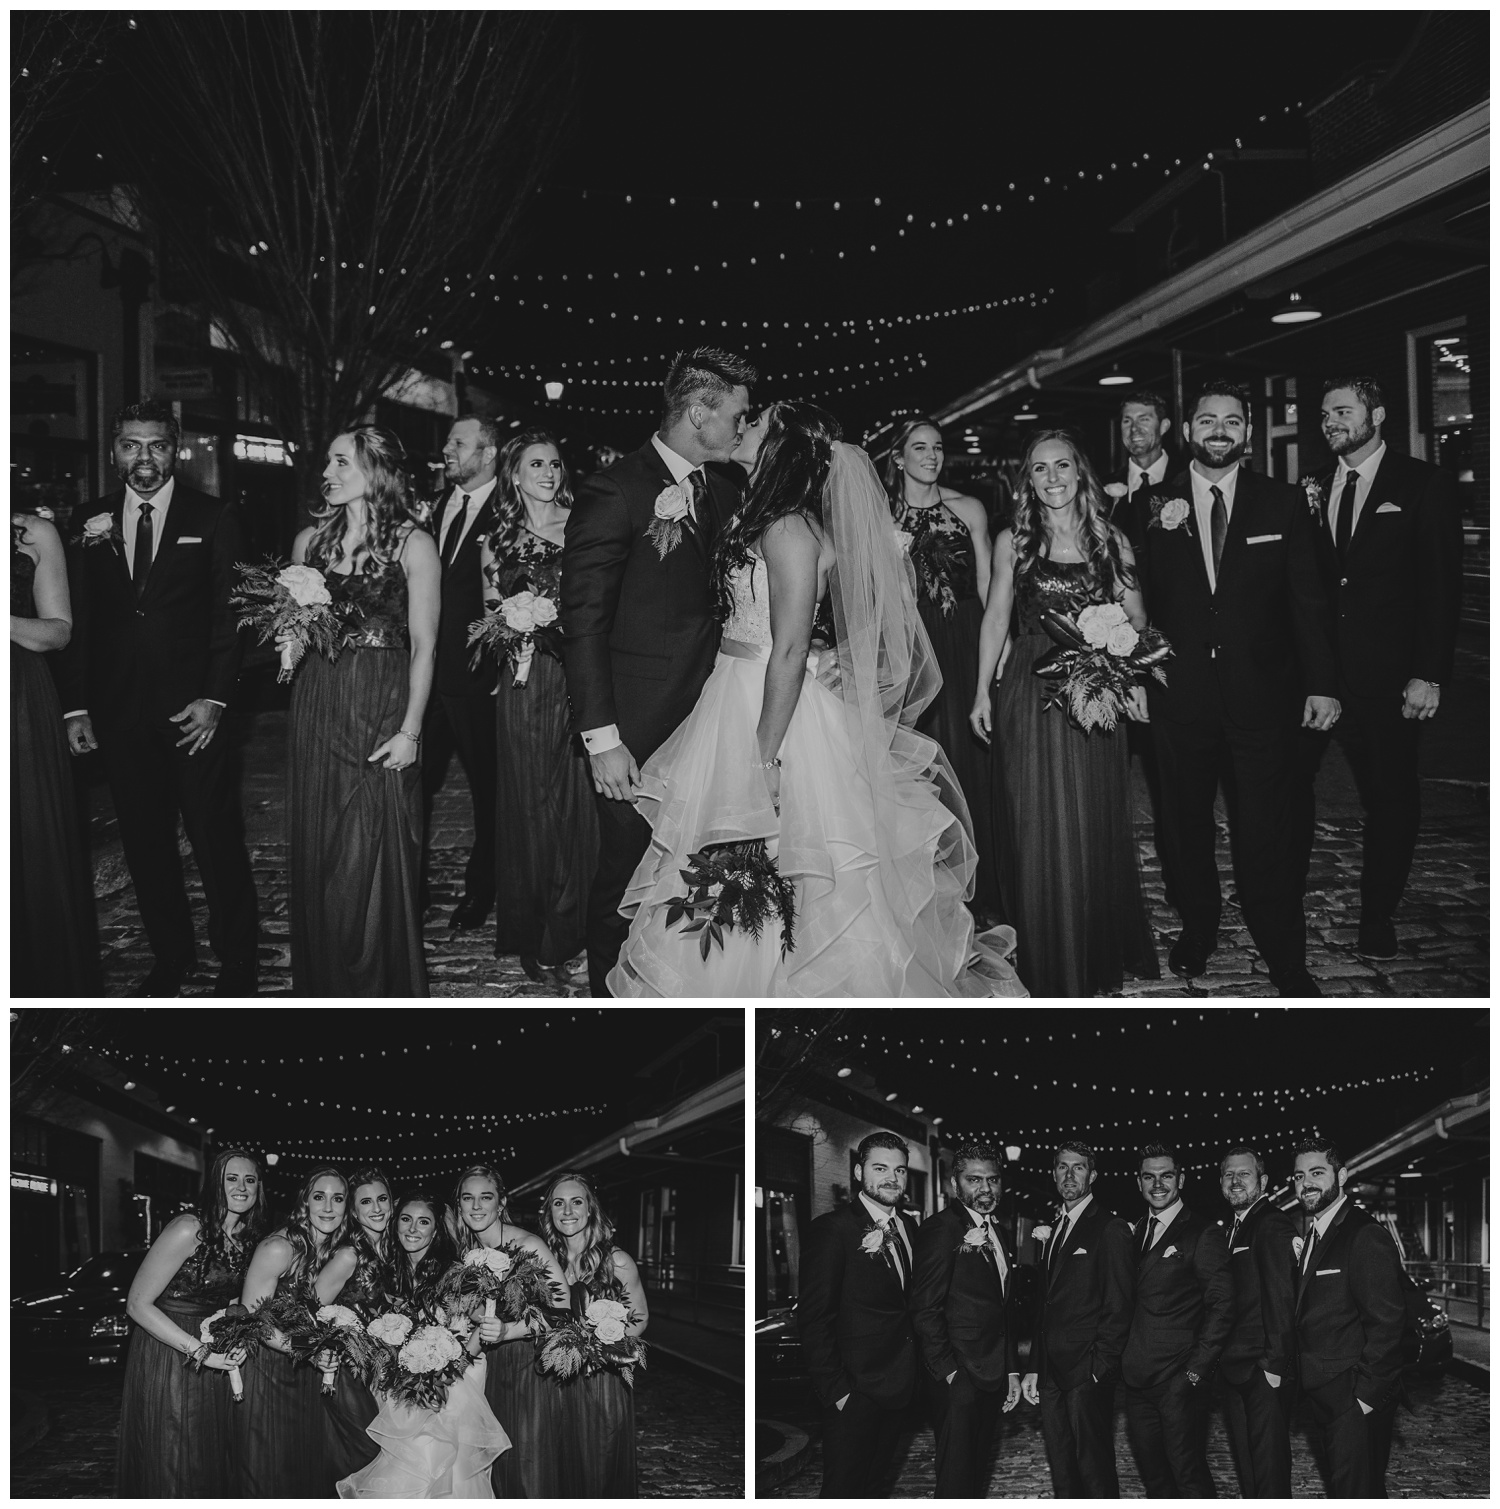 The bride and groom took bridal party pictures at Market Hall after their wedding ceremony at All Saints Chapel in Raleigh, North Carolina, pictures by Rose Trail Images.